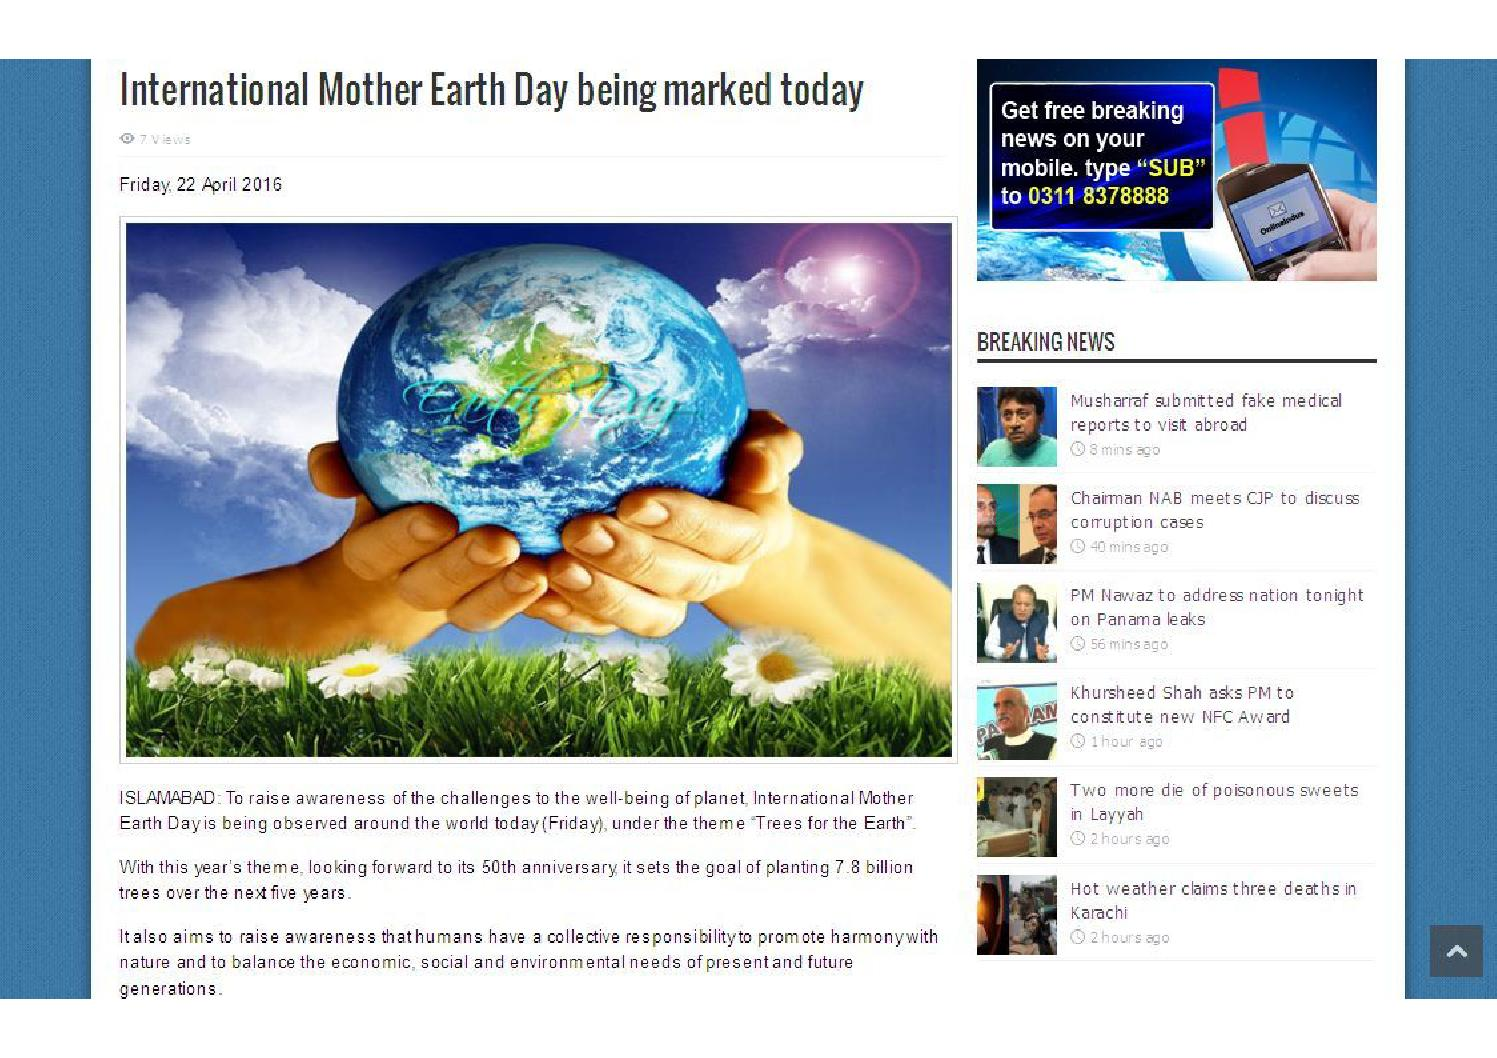 International Mother Earth Day being marked today by